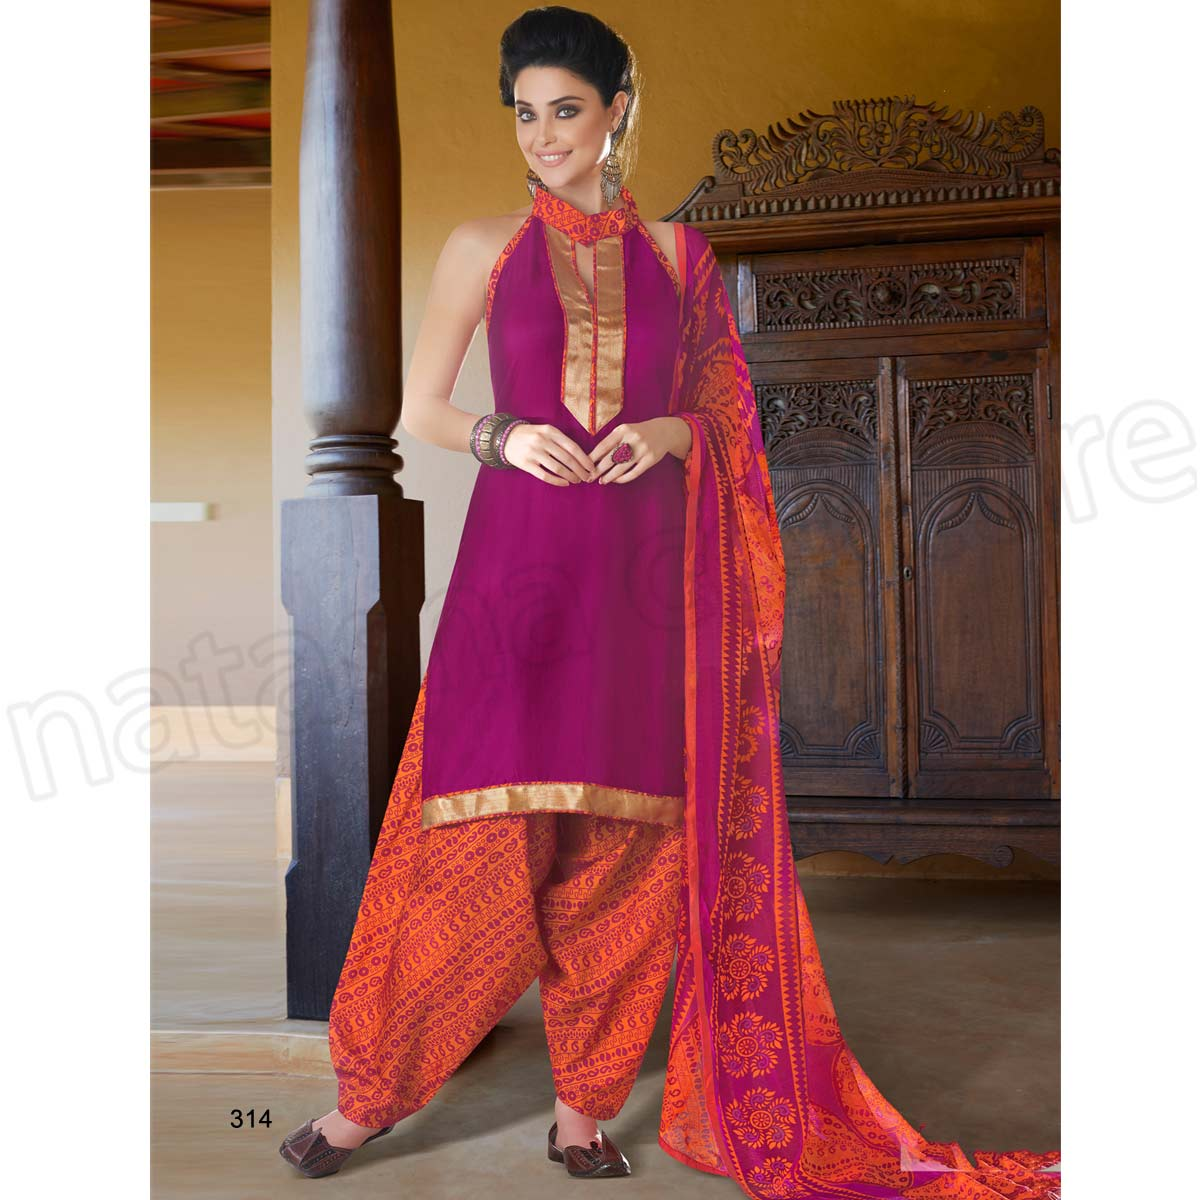 Latest Indian Patiala shalwar kameez fashion 2015-2016 (30)